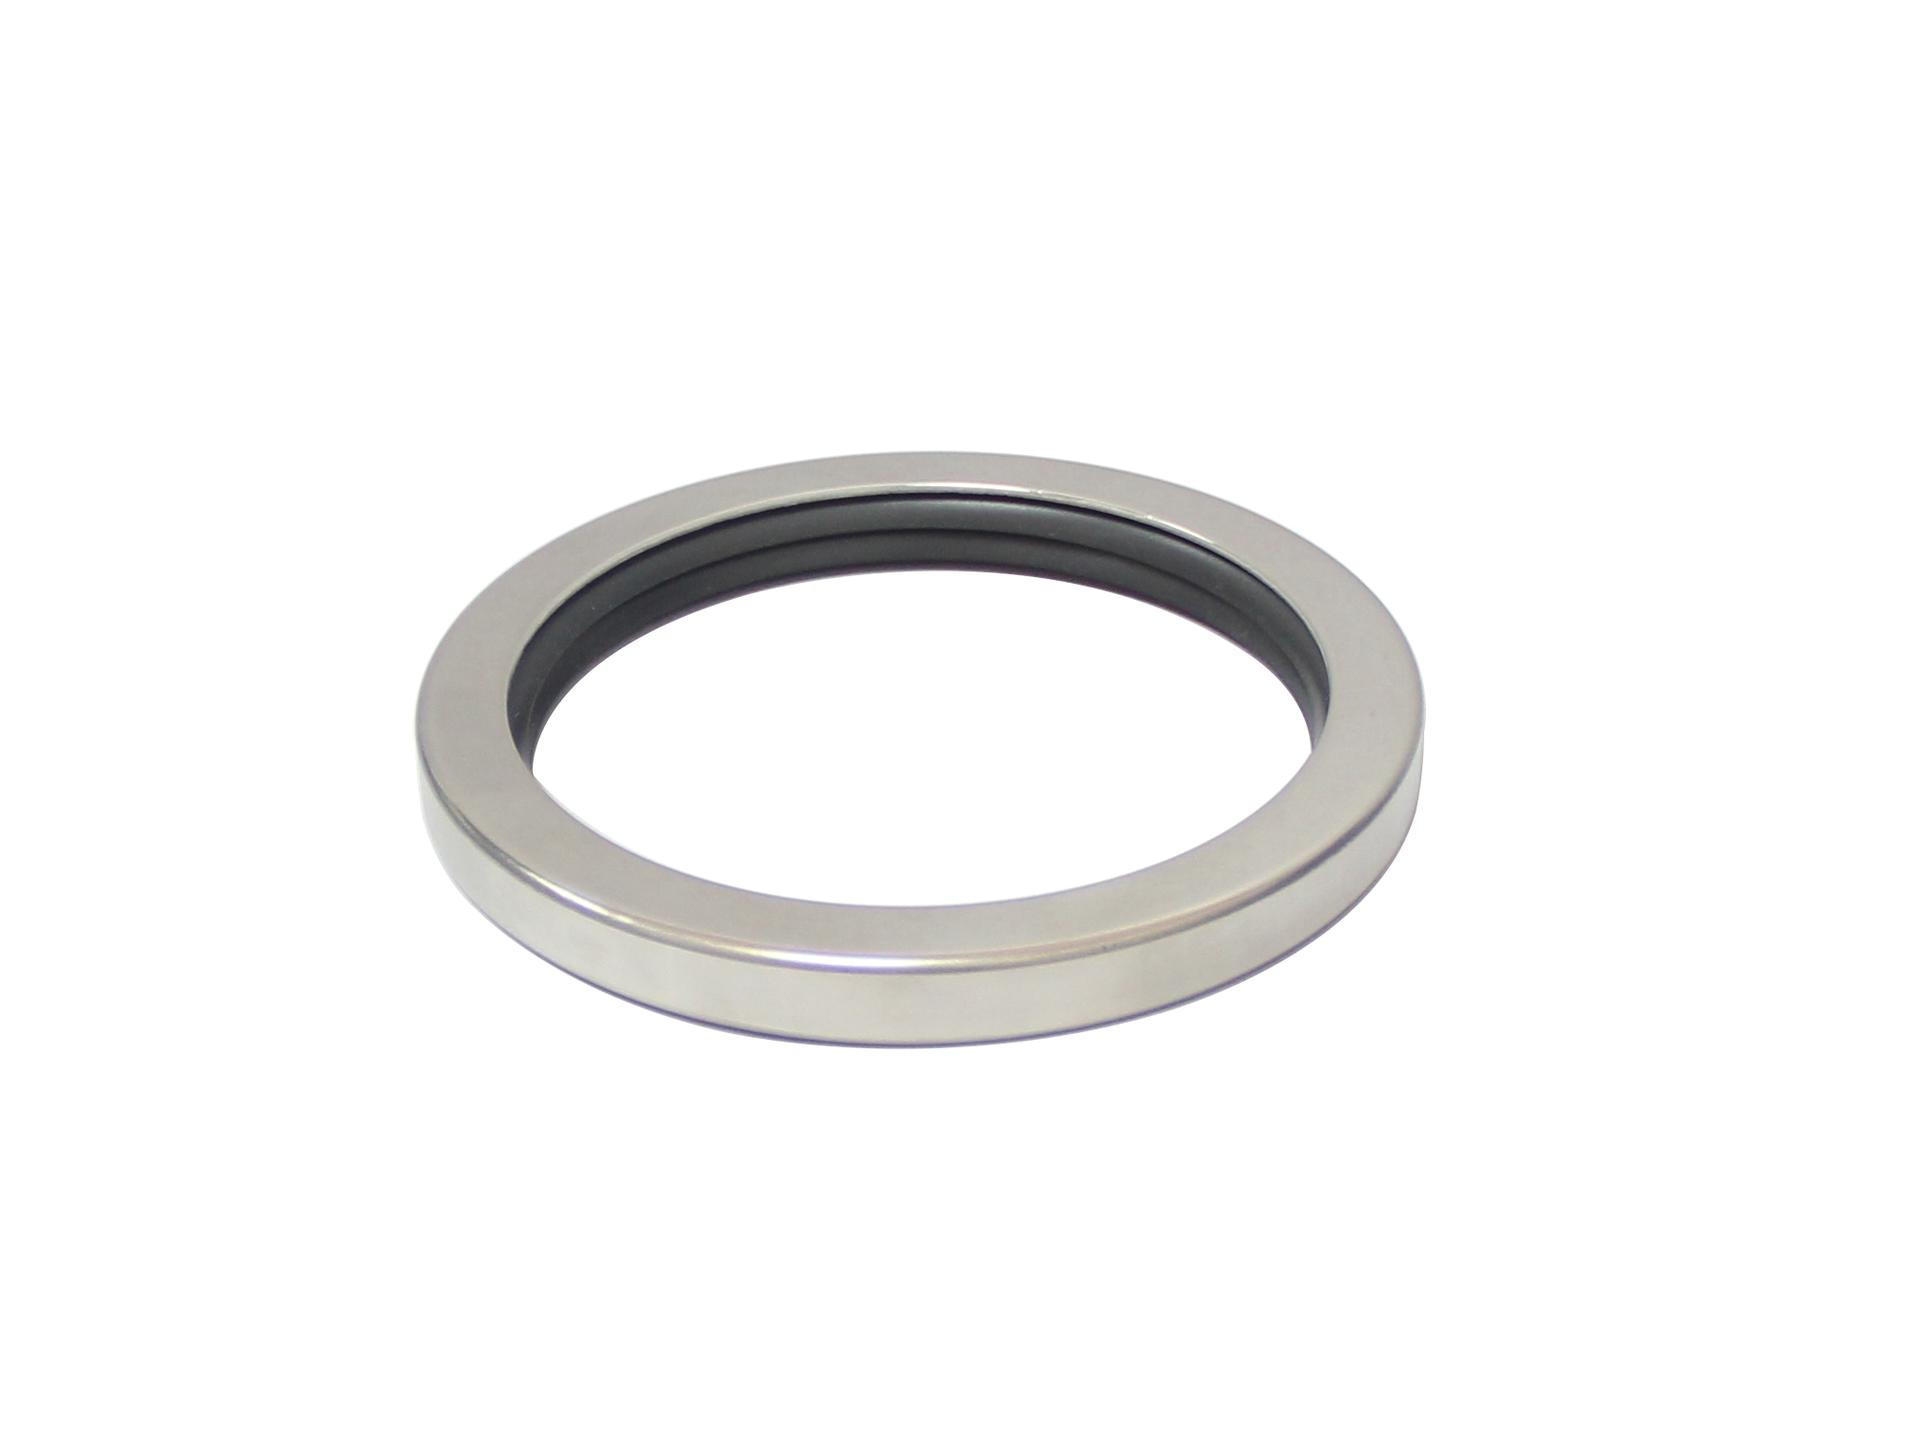 single shaft oil seals design for machine